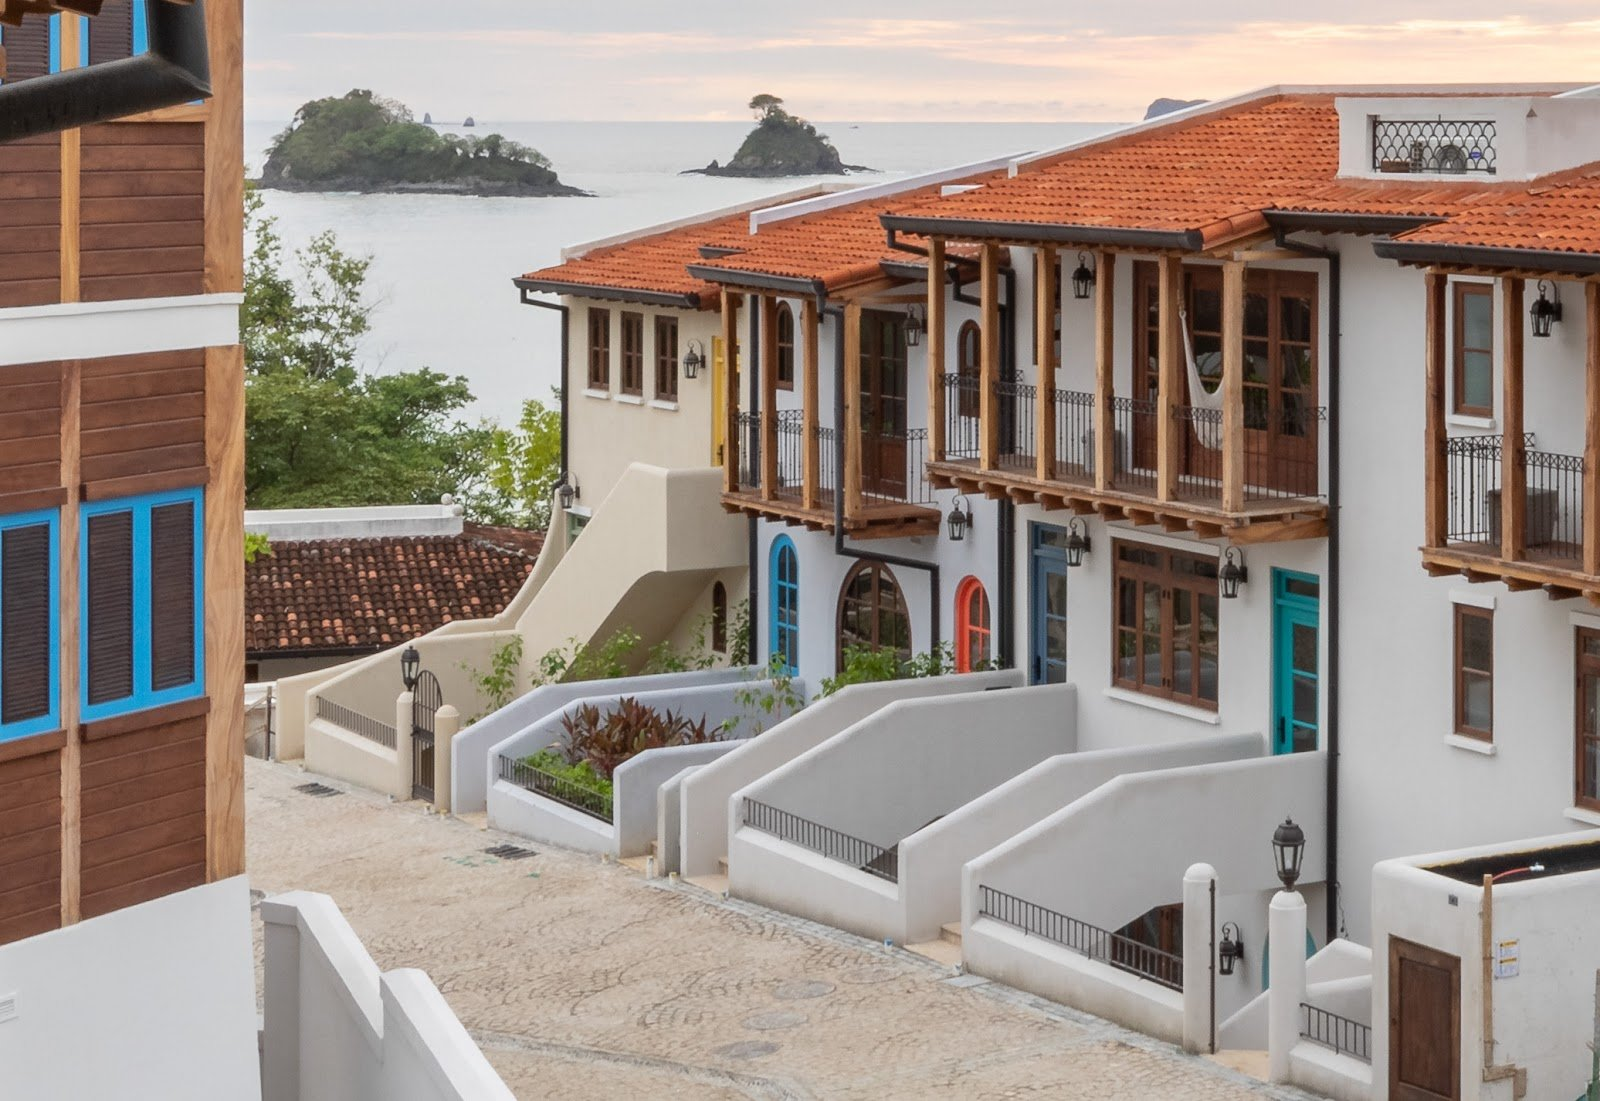 The Cartagena Flats' location just a few steps from the beach.